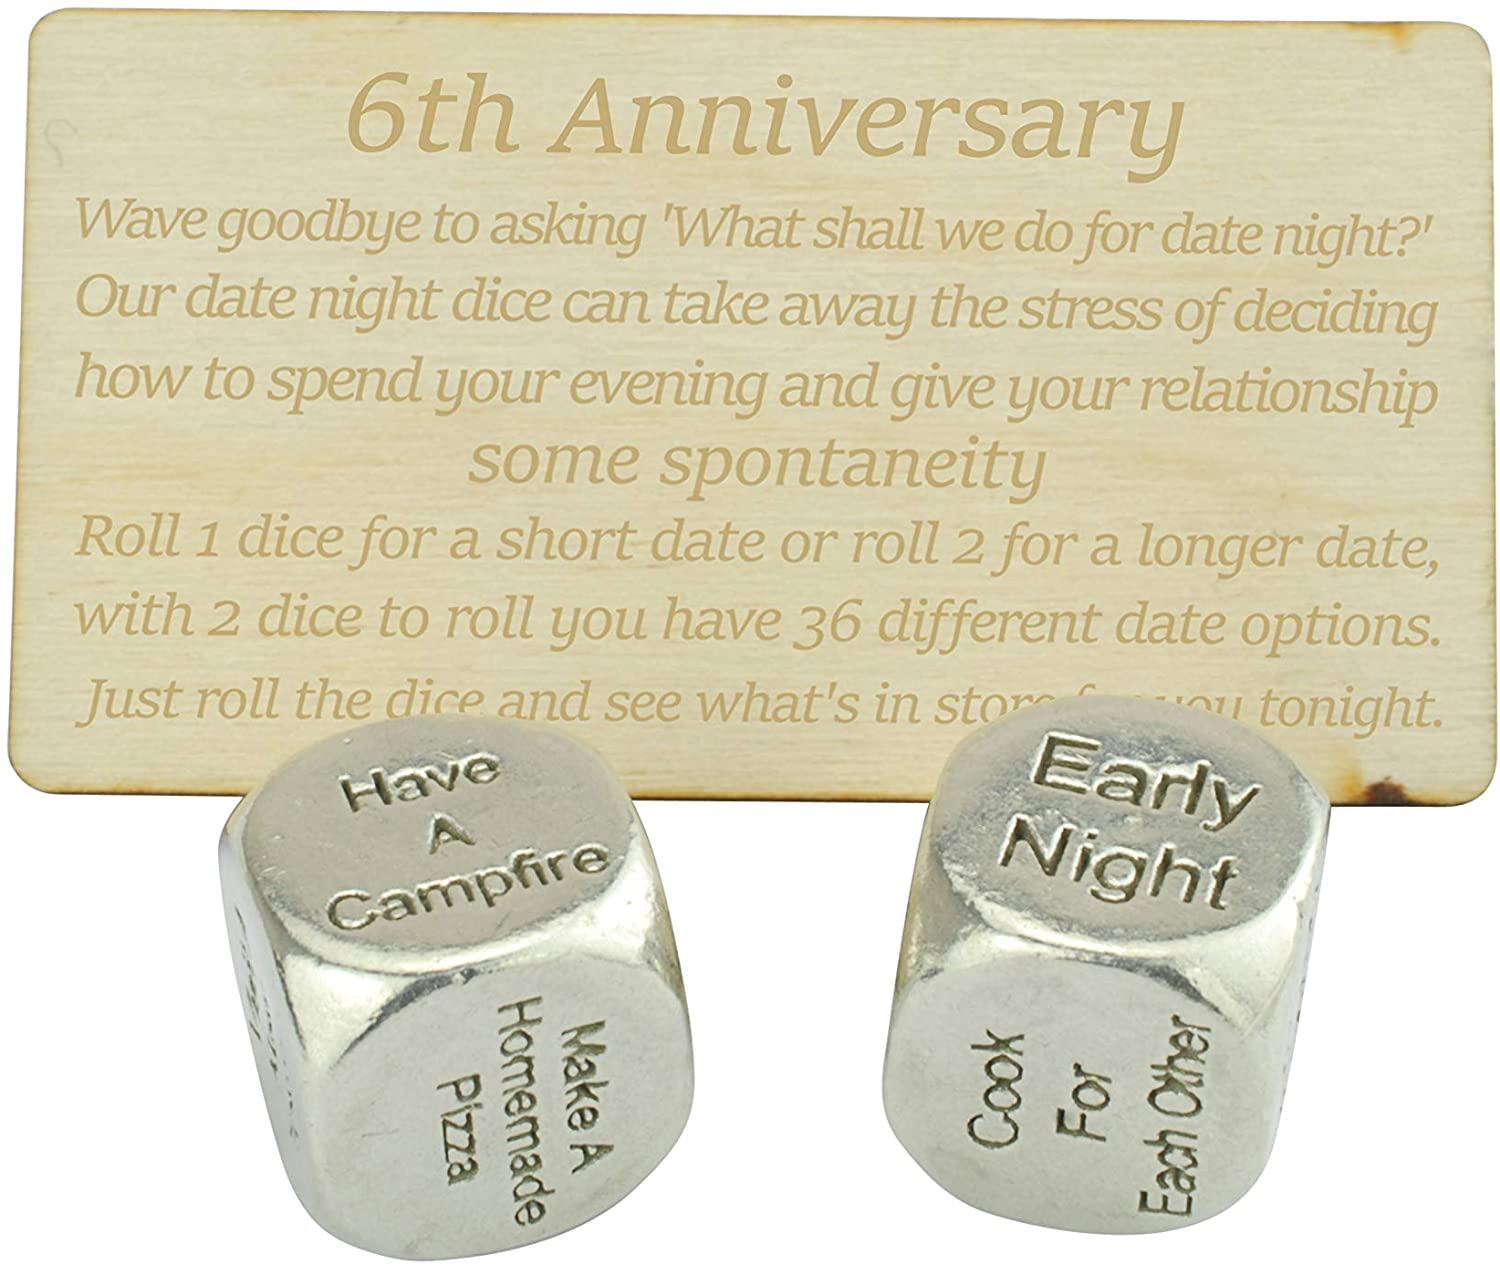 6th Wedding Anniversary Date Night Dice Ideas for Your 6 Year Wedding Anniversary